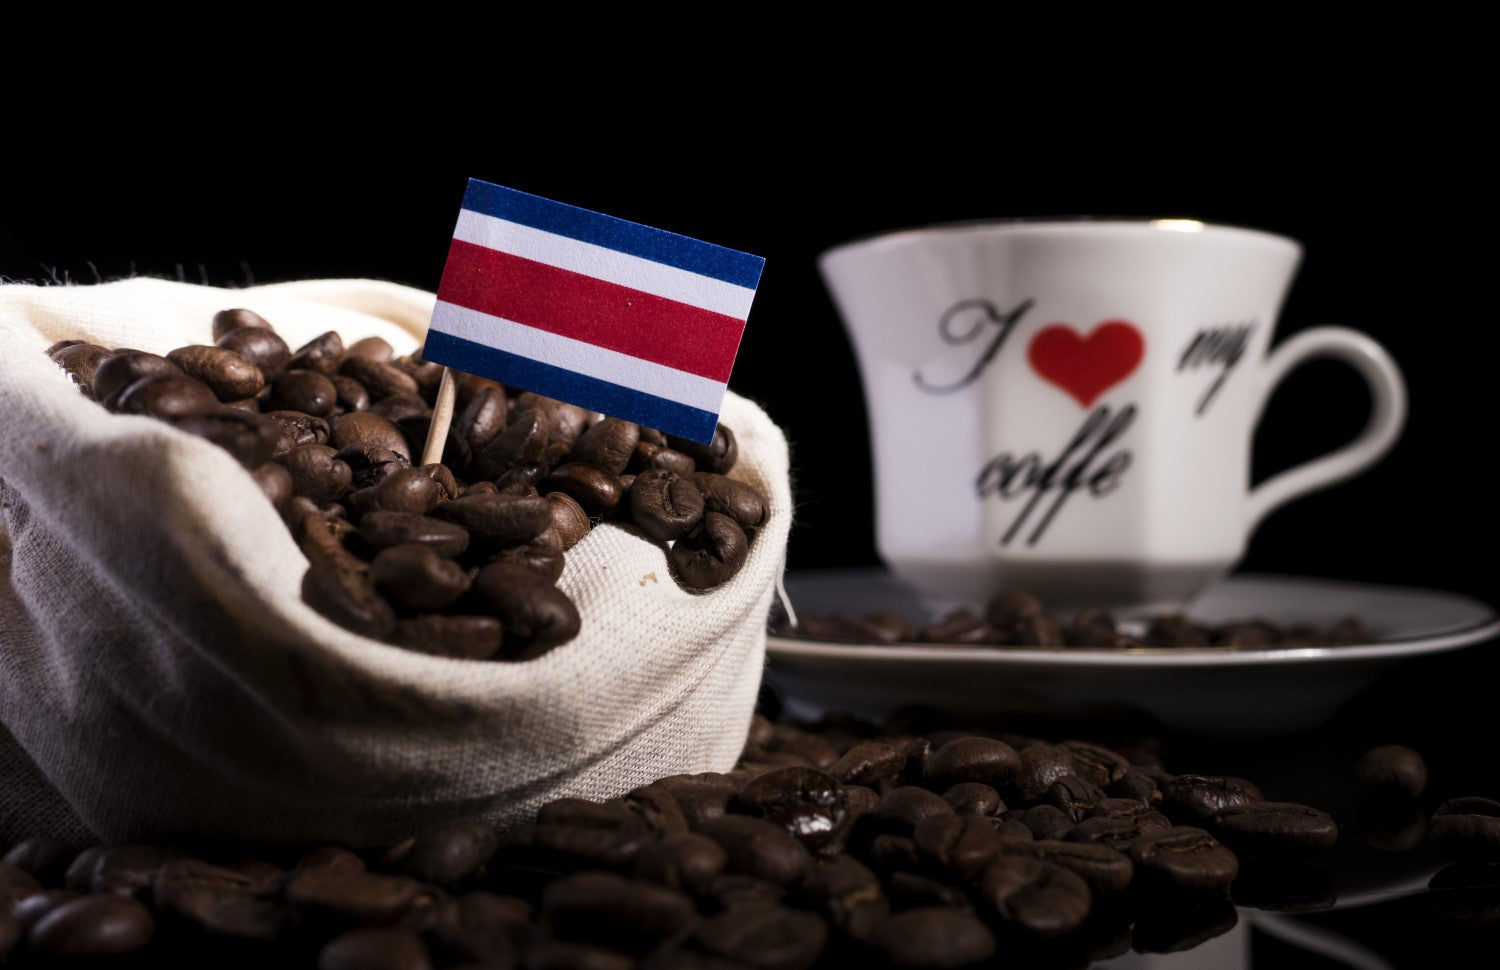 costa rica flag on coffee beans